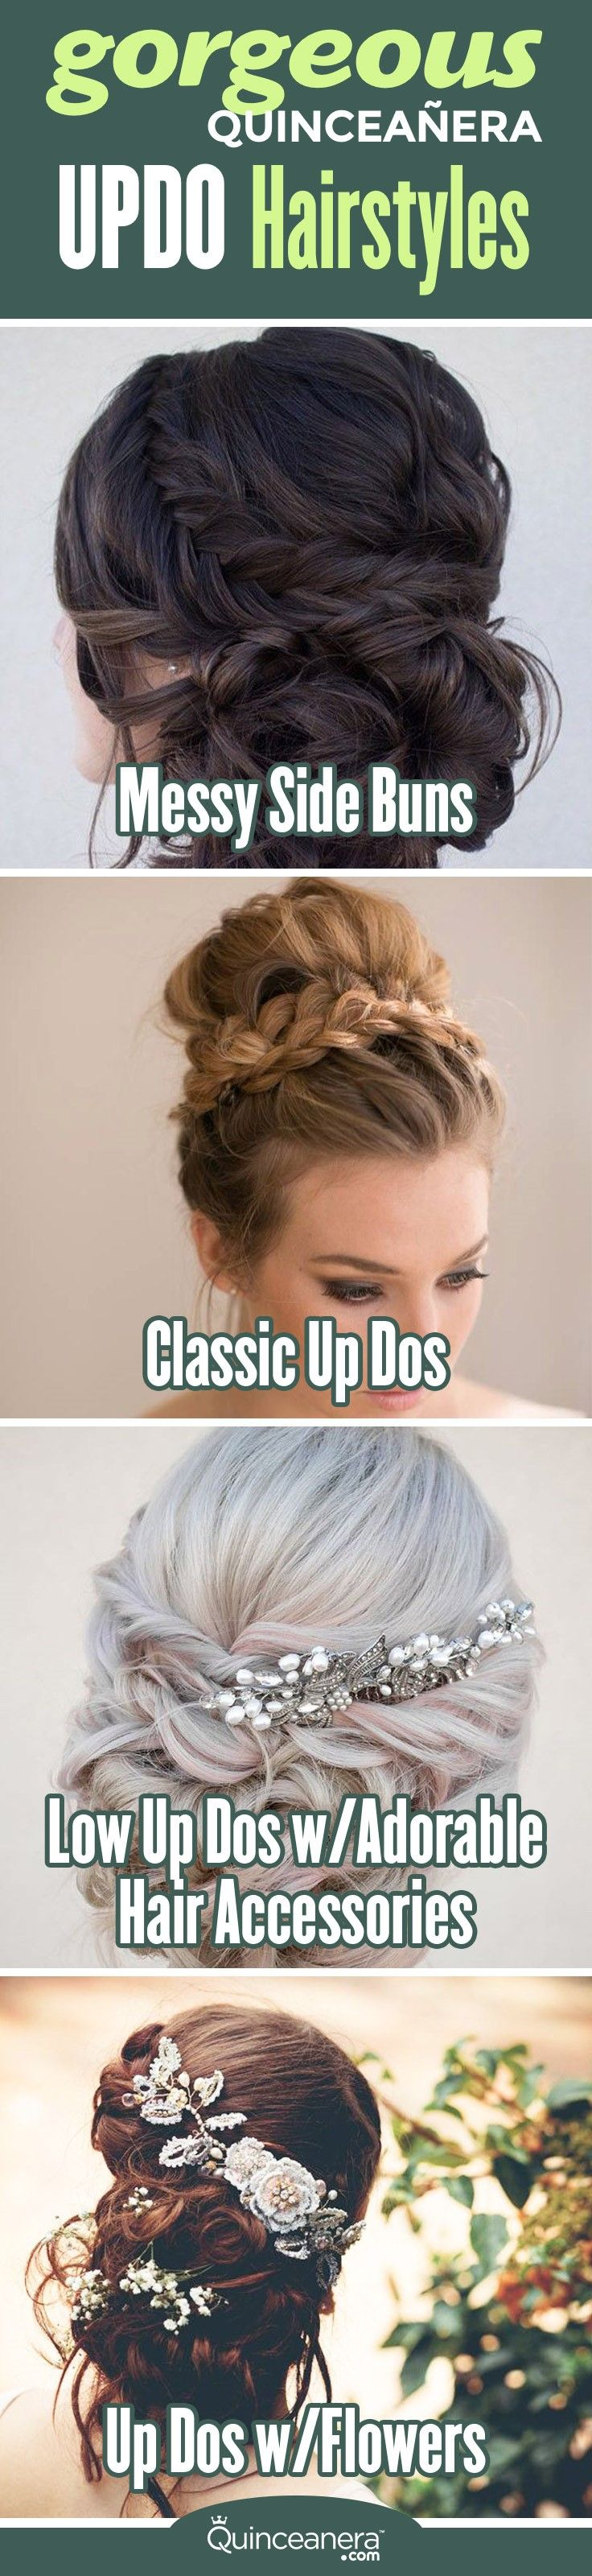 204 best Quinceanera Hairstyles images on Pinterest